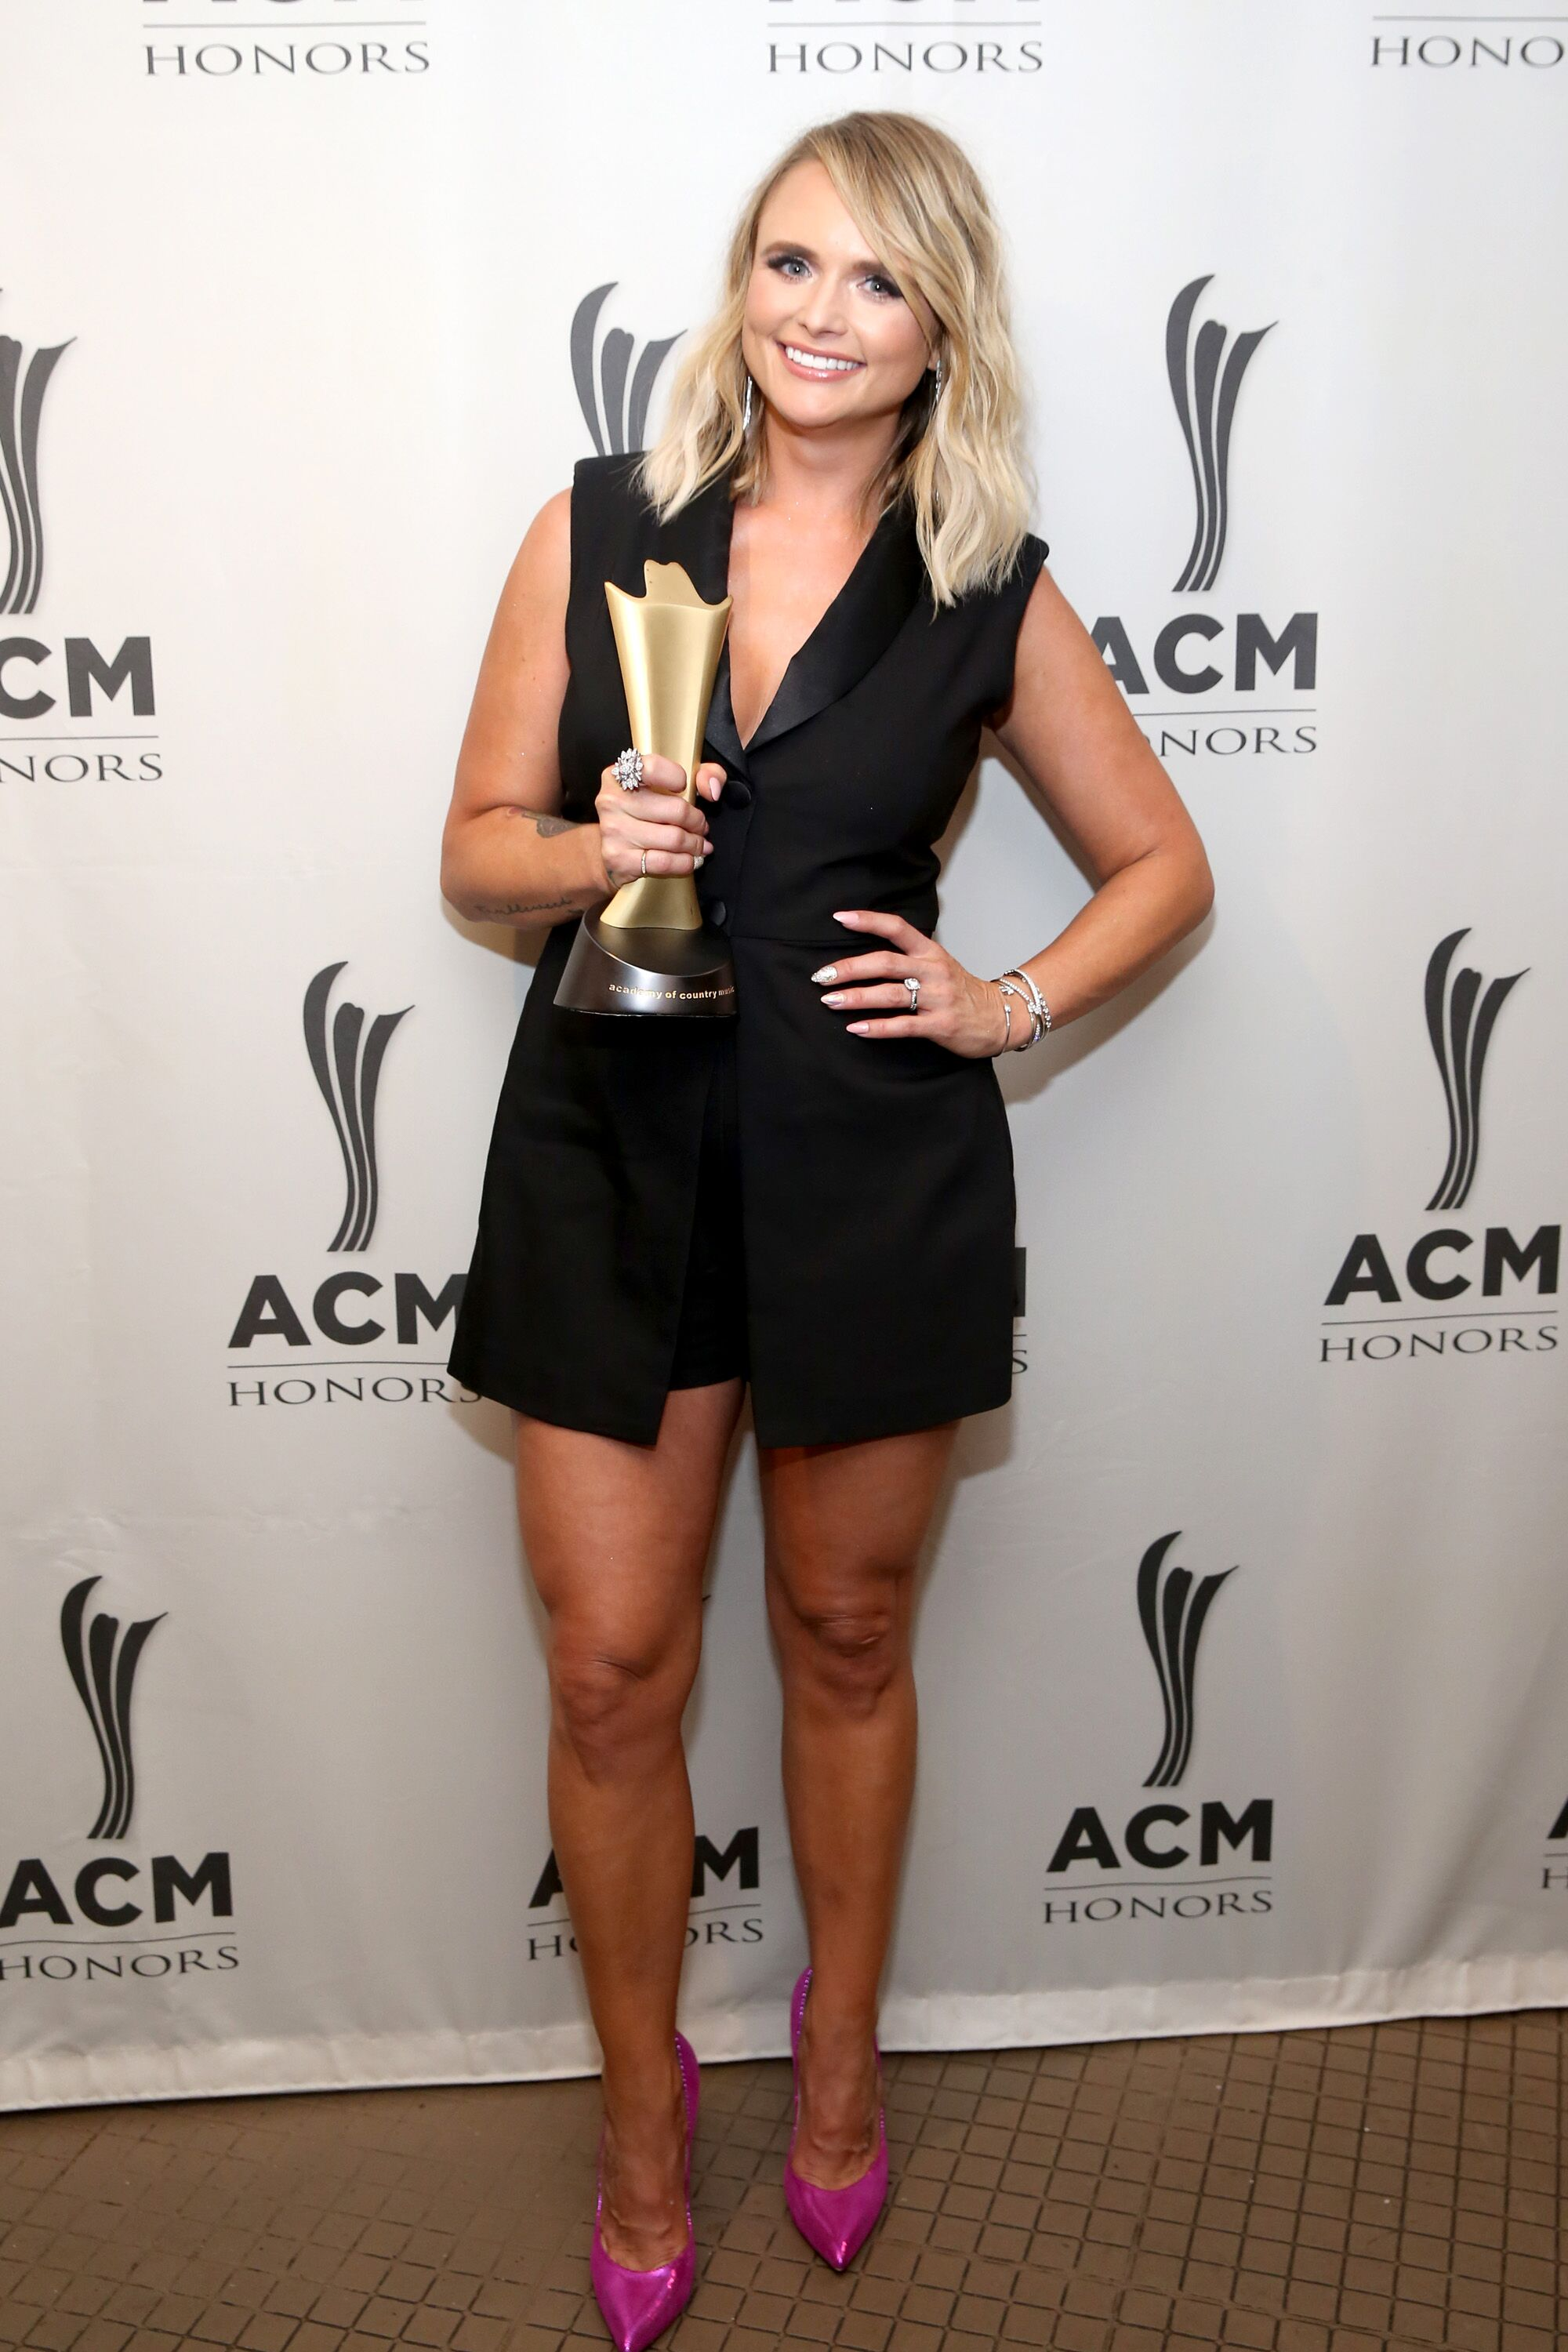 Miranda Lambert at the 13th Annual ACM Honors on August 21, 2019, in Nashville, Tennessee.   Source: Getty Images